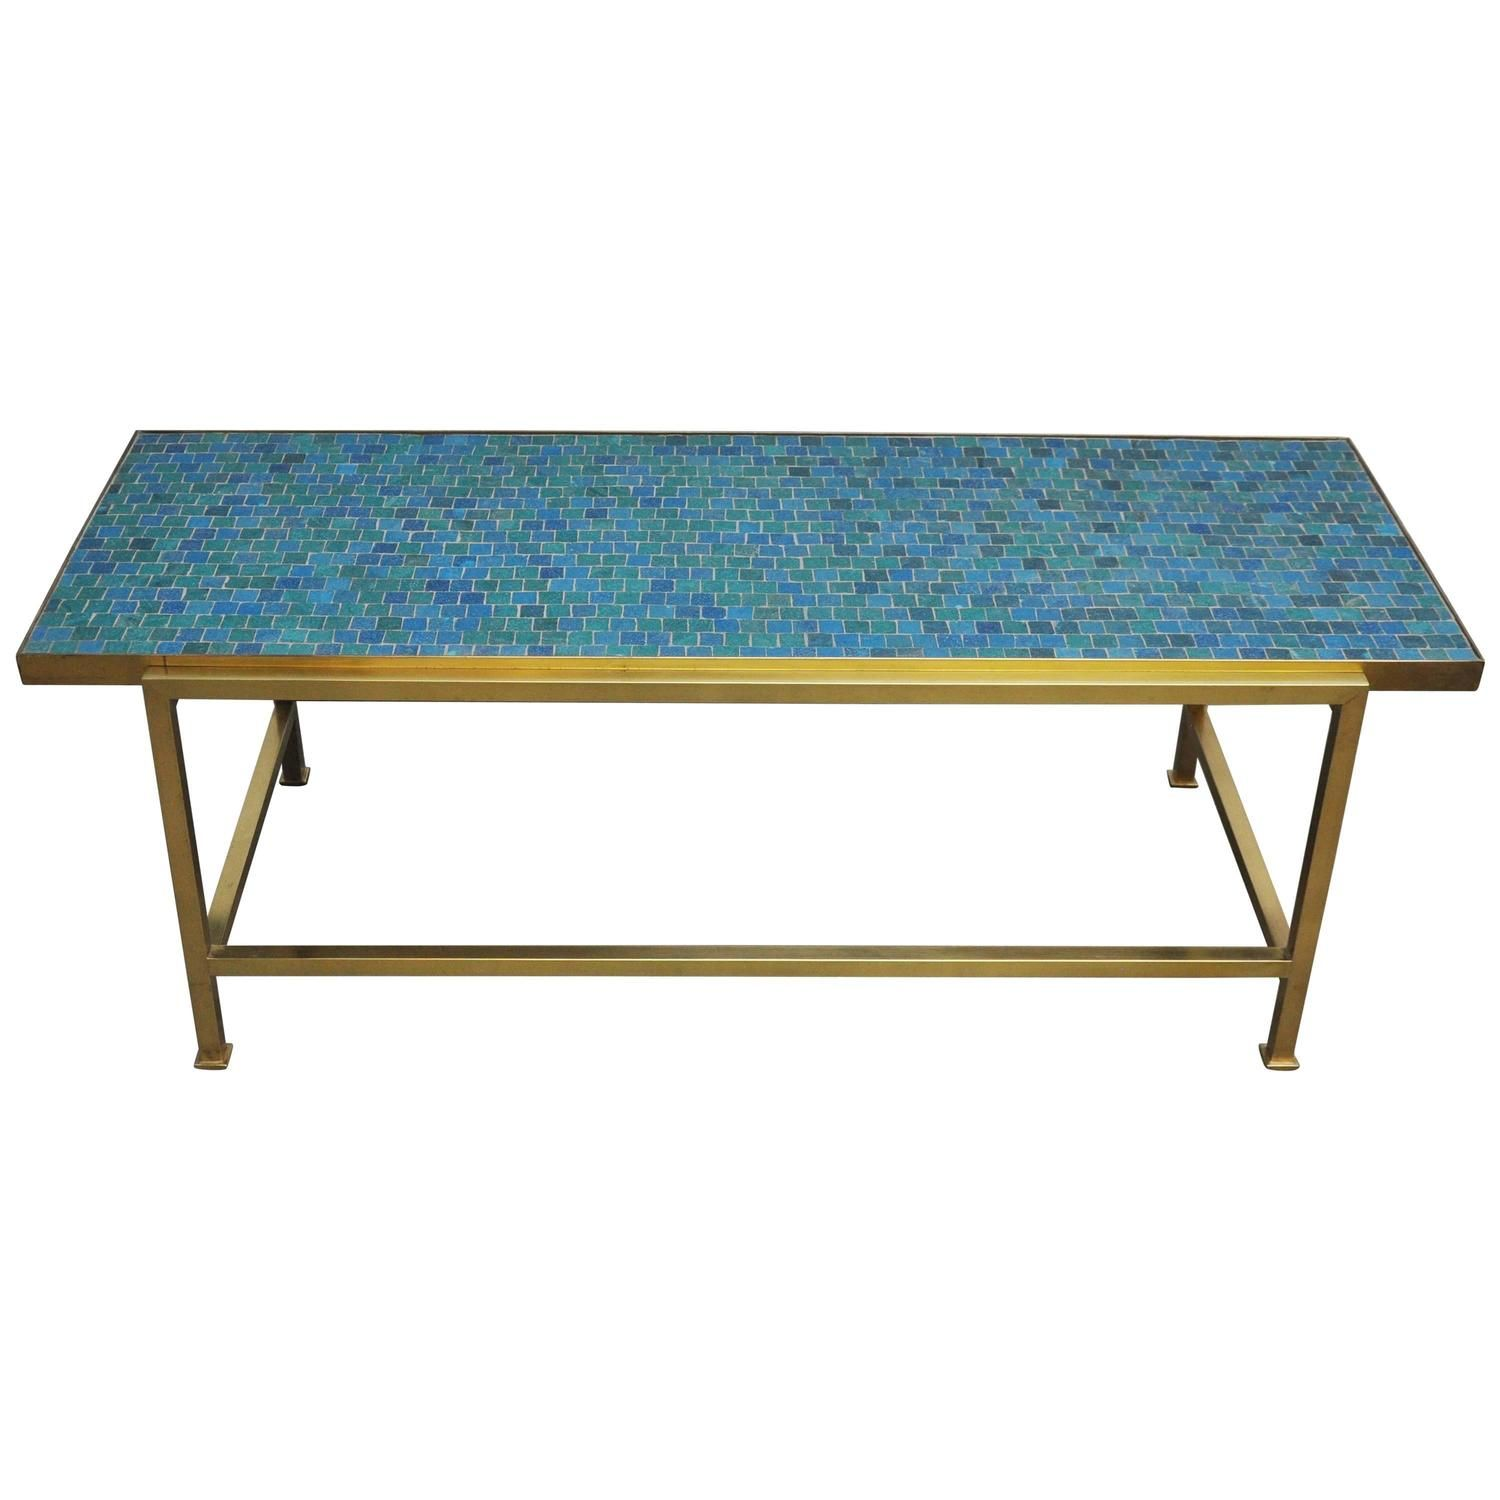 Dunbar Mosaic Murano Glass Tile Coffee Table by Edward Wormley